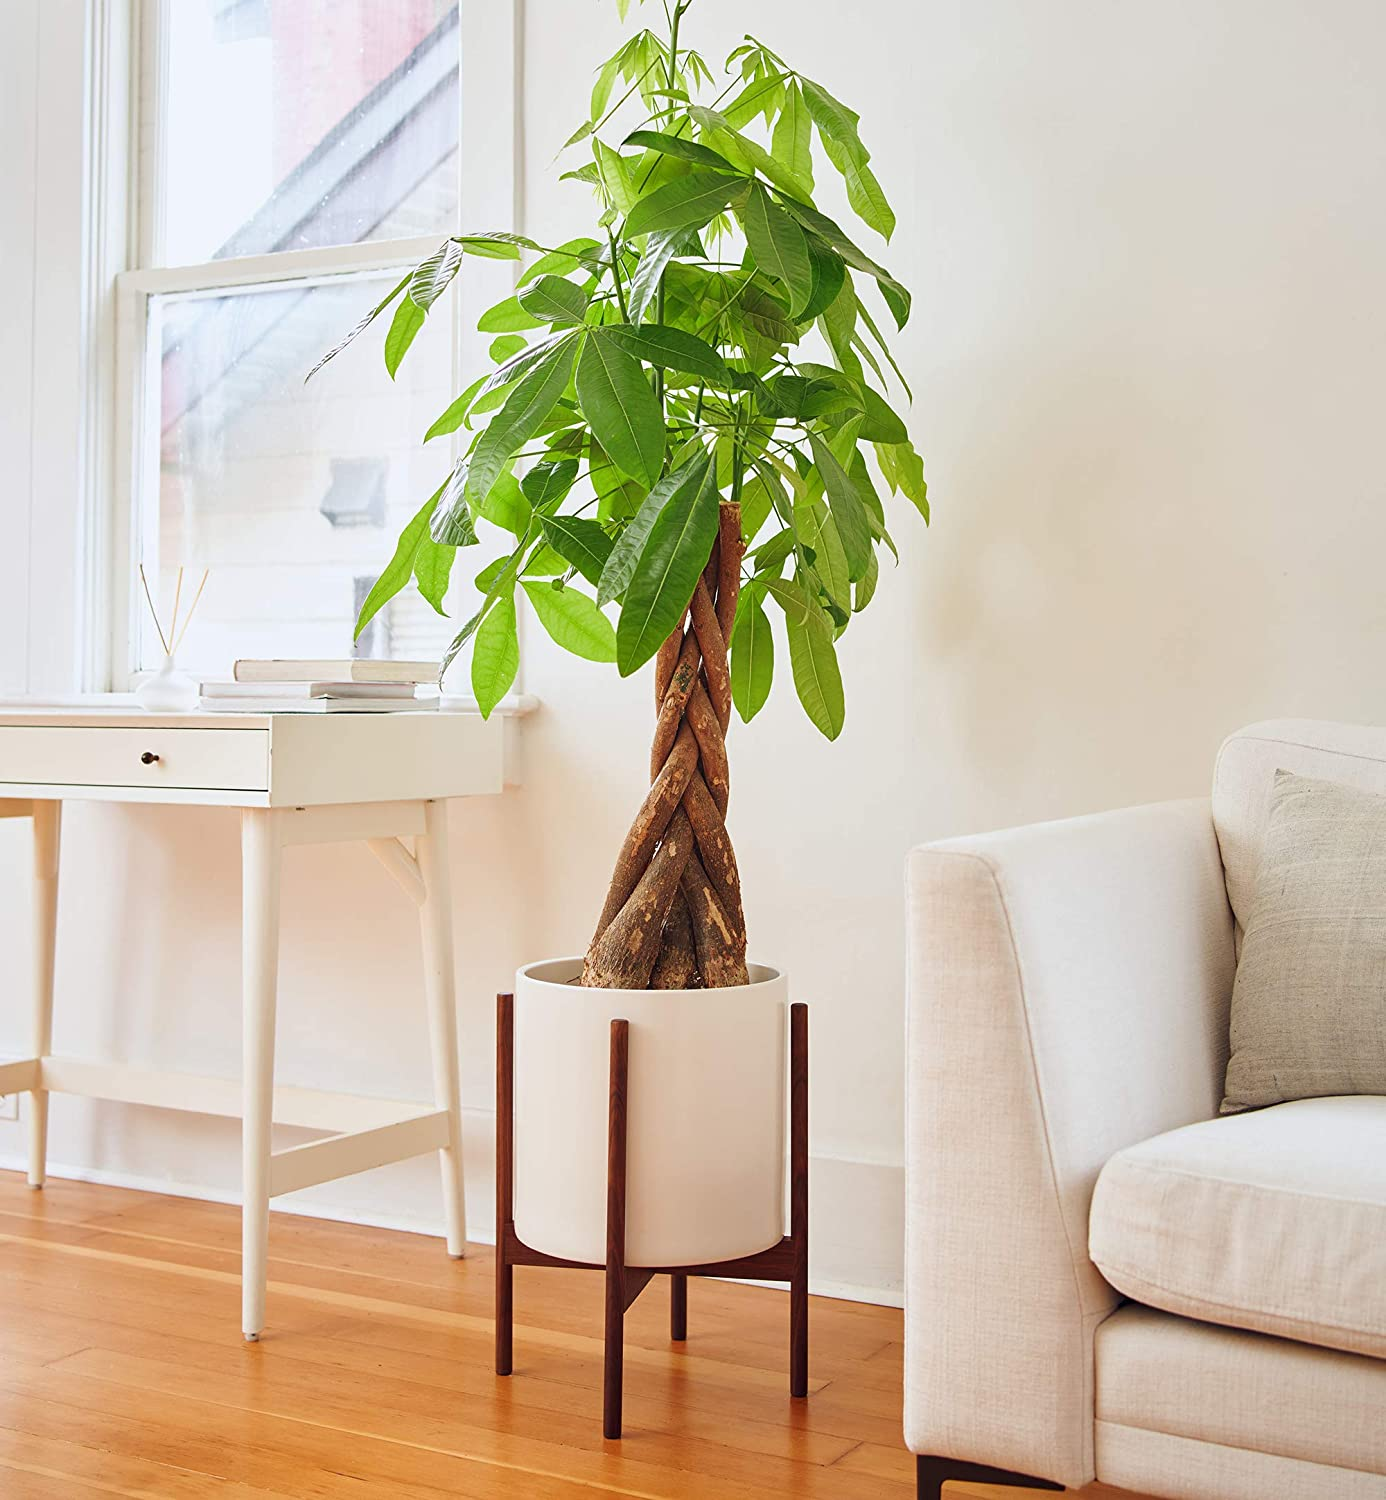 Omysa Mid Century Plant Stand with Pot and Drainage